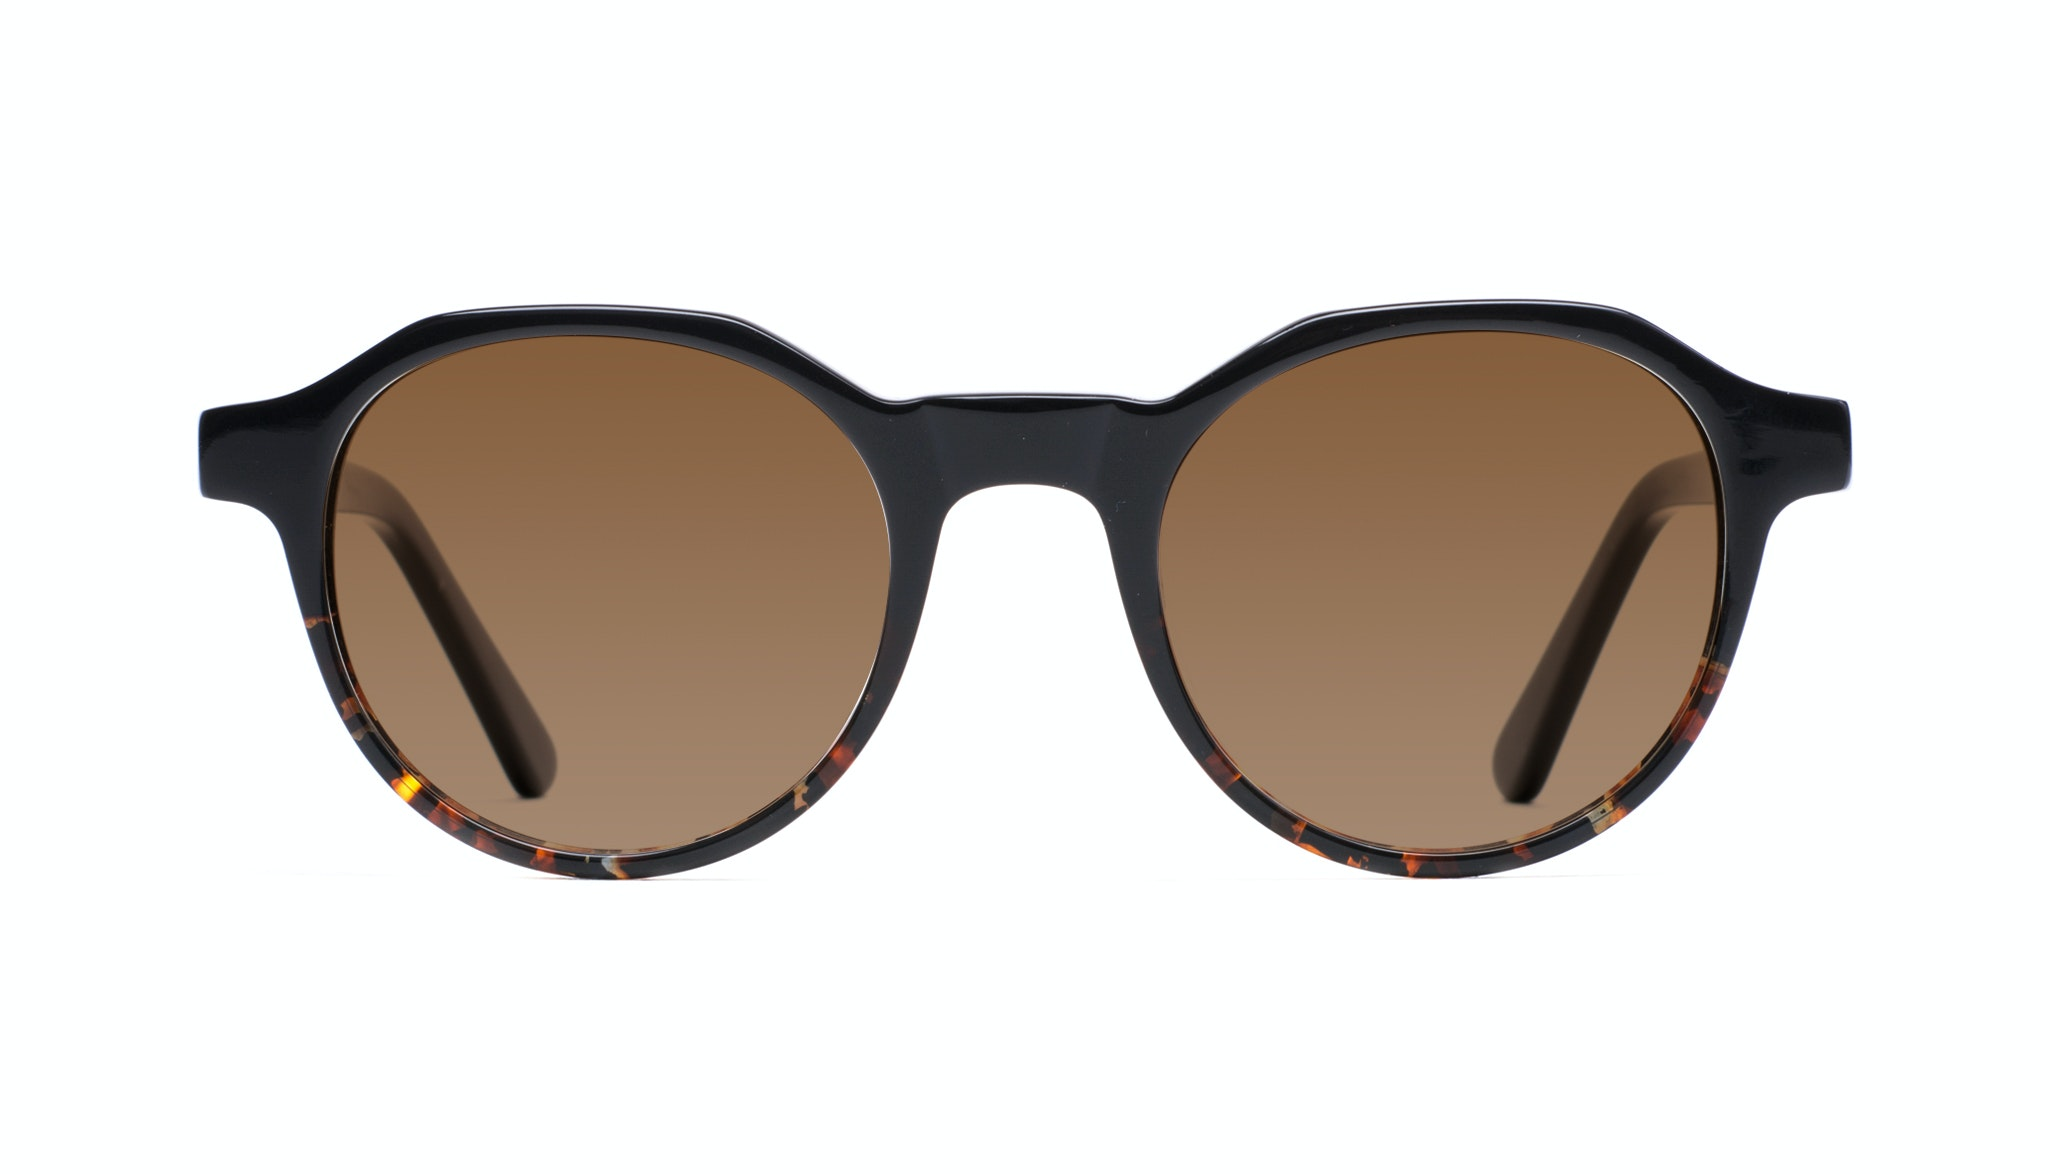 Affordable Fashion Glasses Round Sunglasses Men Form Black Mahogany Front